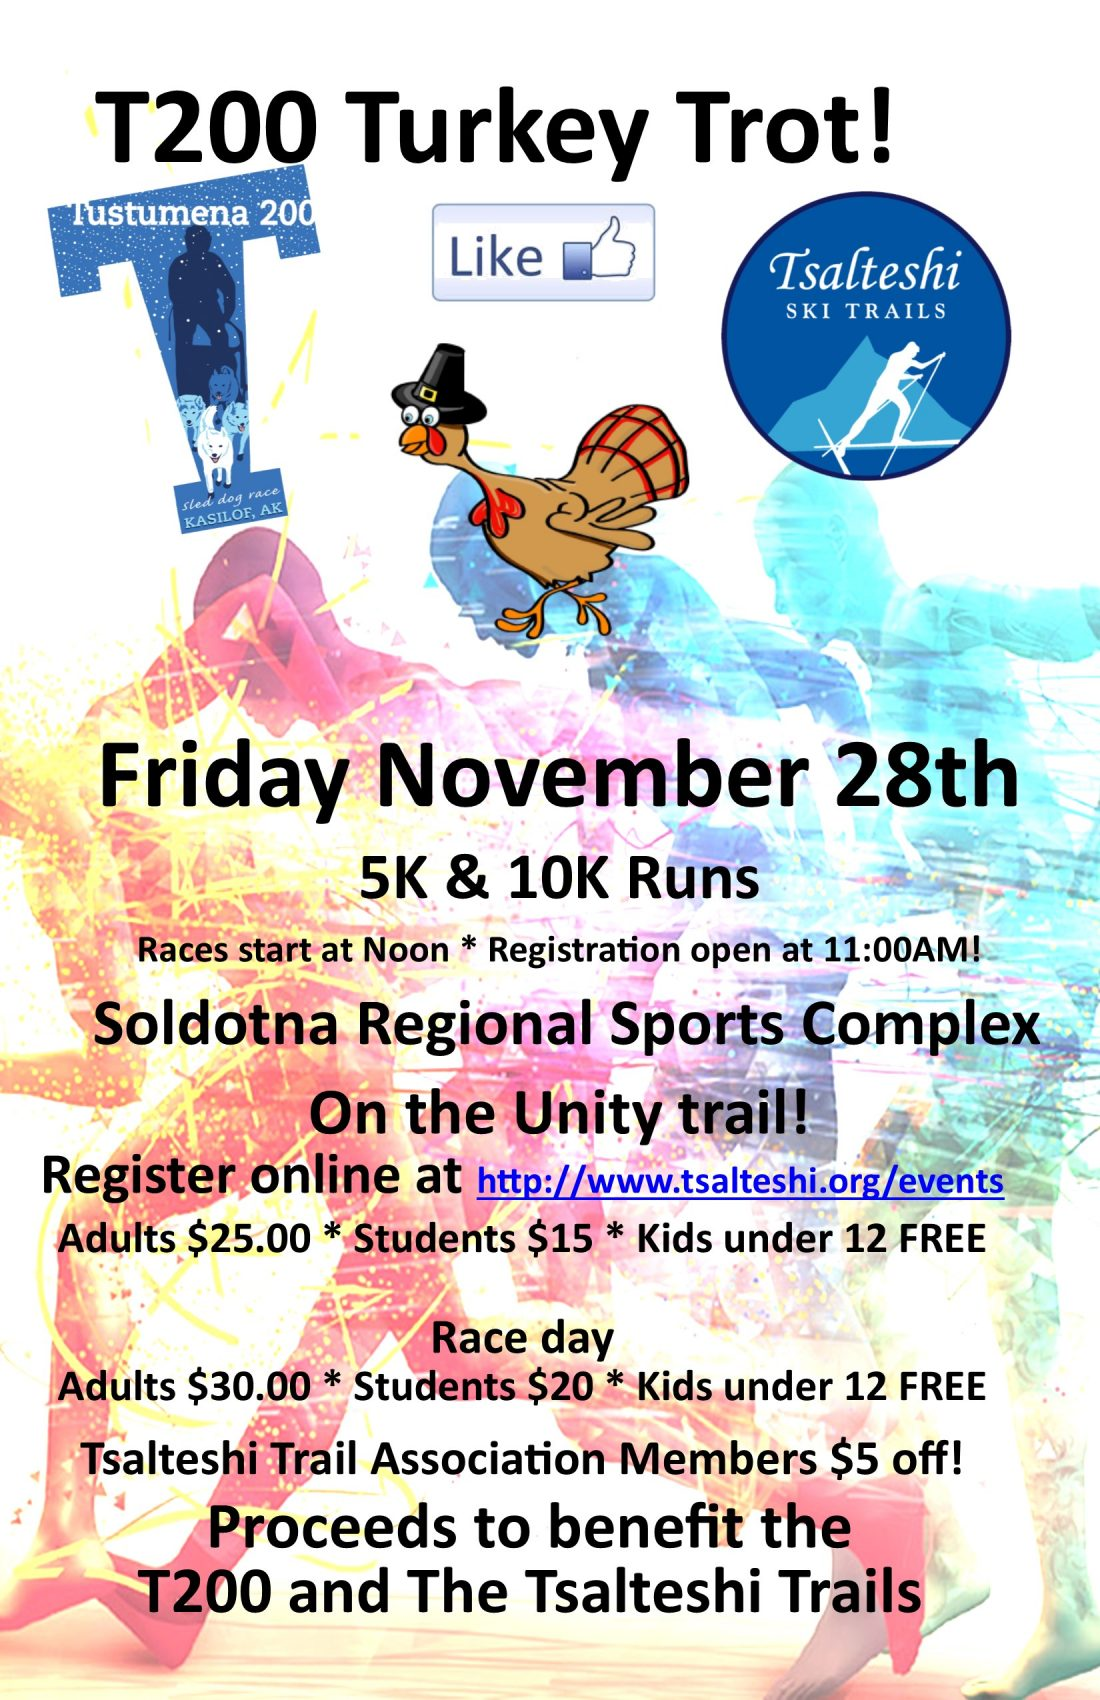 T200 Turkey Trot